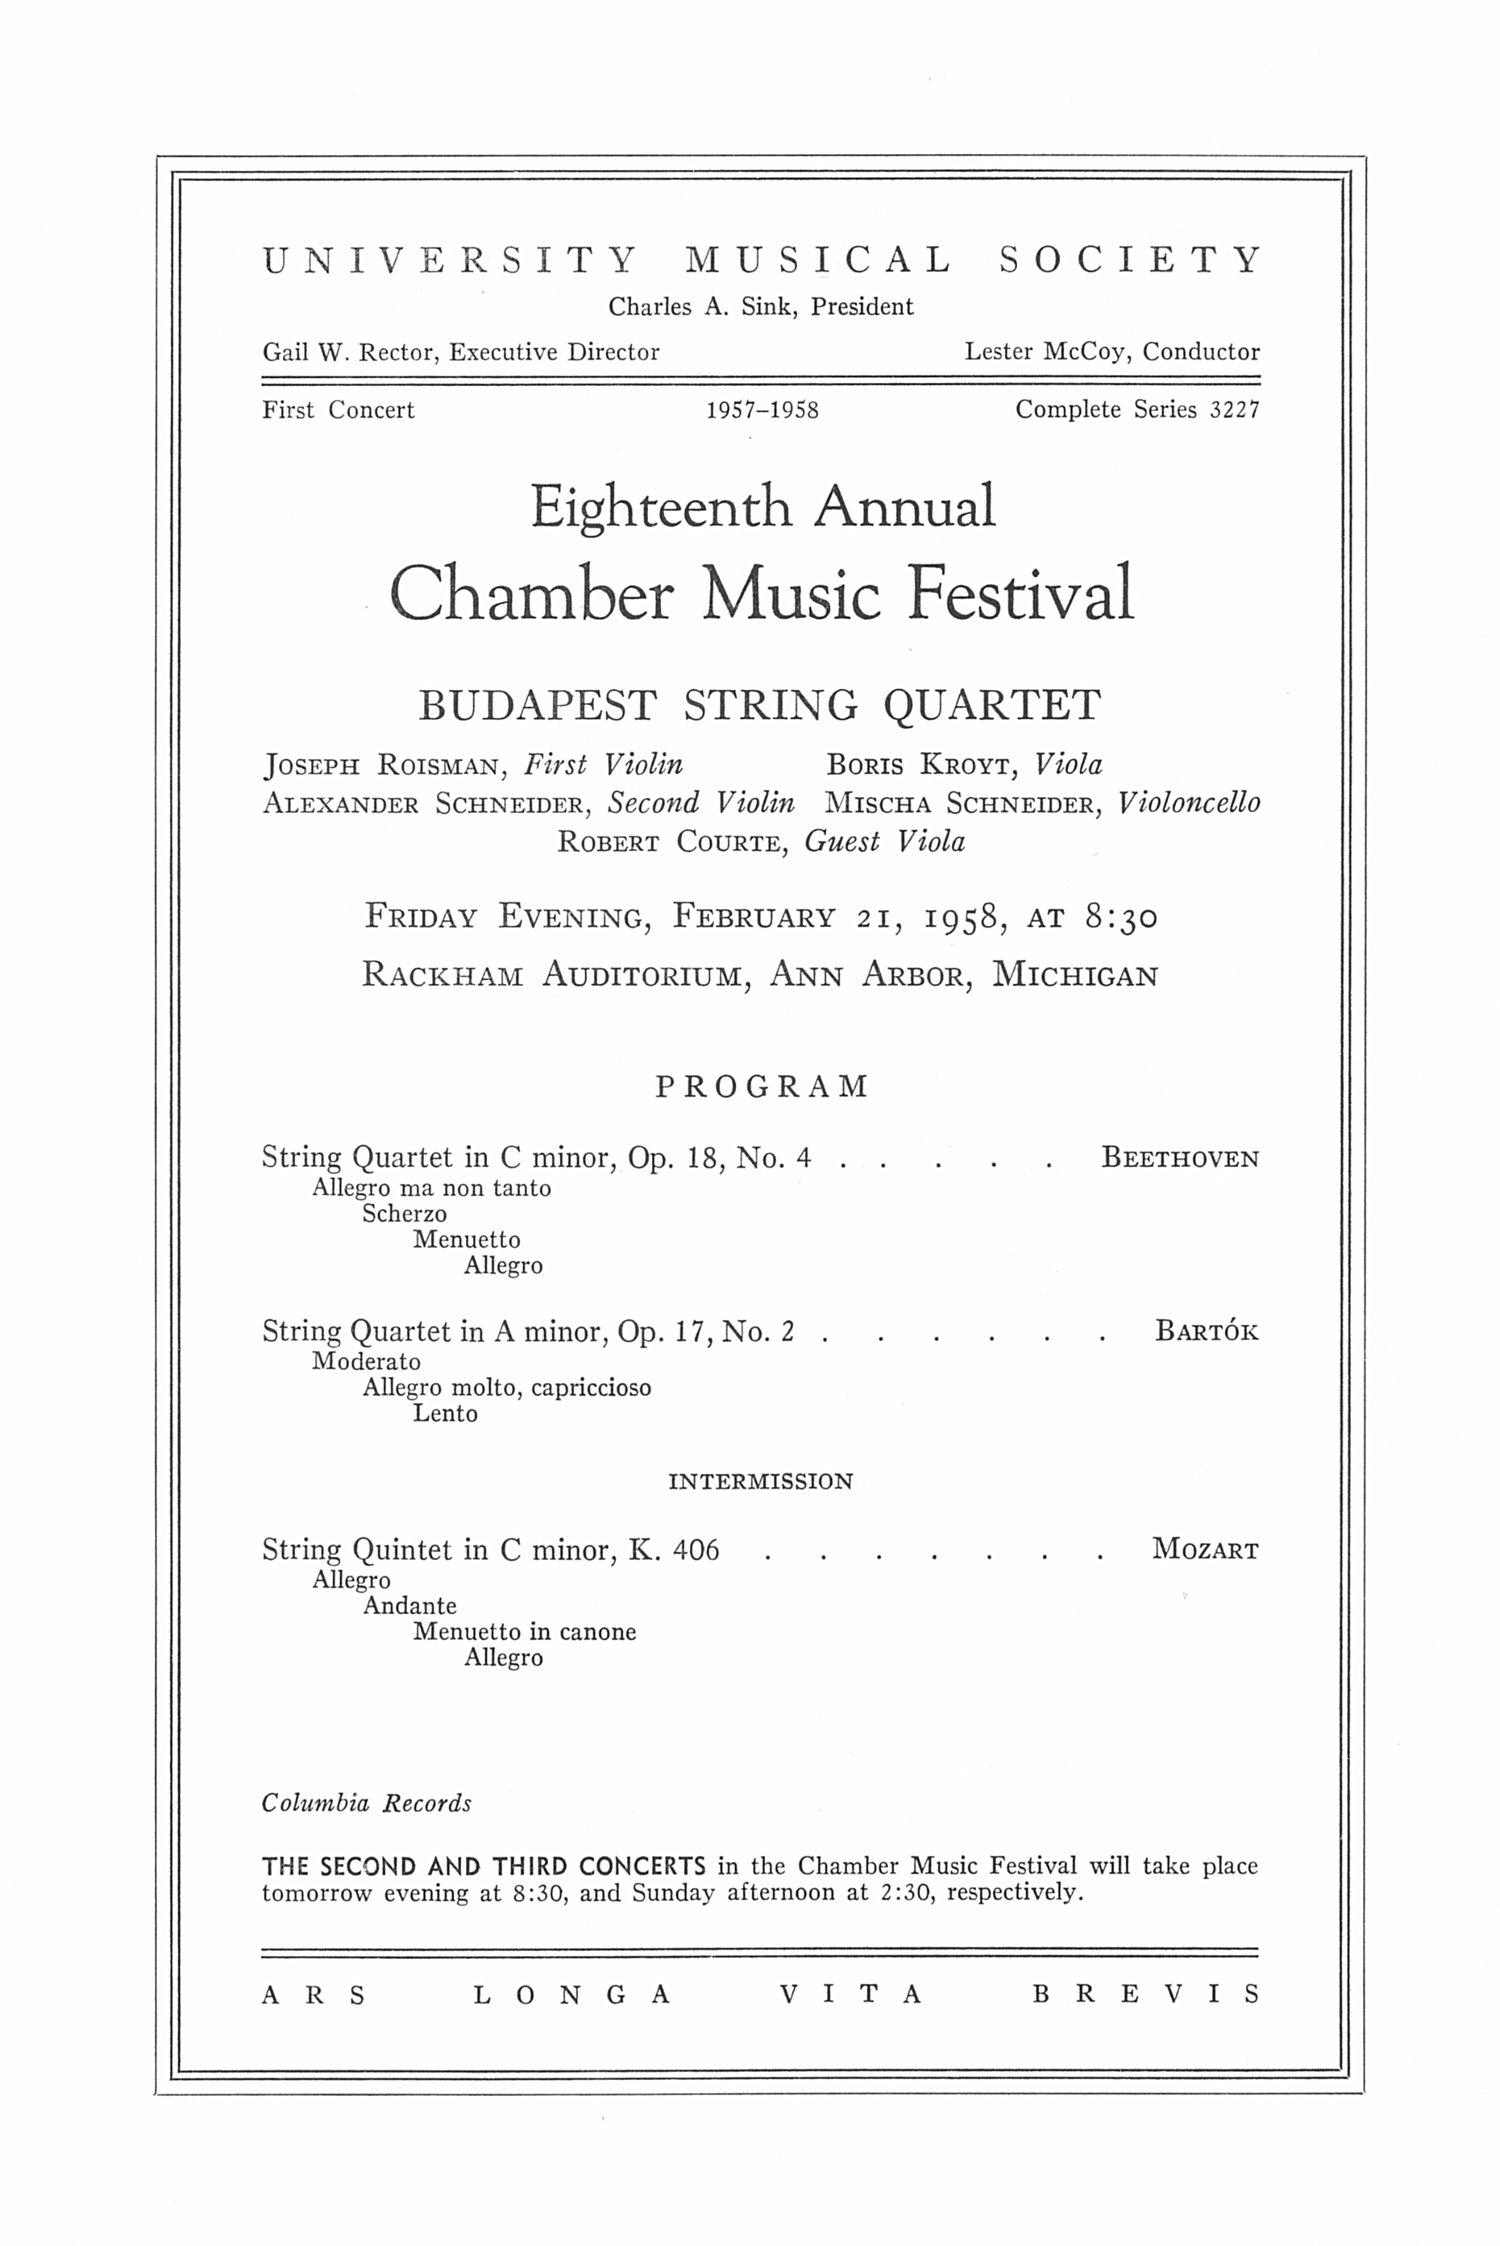 UMS Concert Program, February 21, 1958: Eighteenth Annual Chamber Music Festival -- Budapest String Quartet image